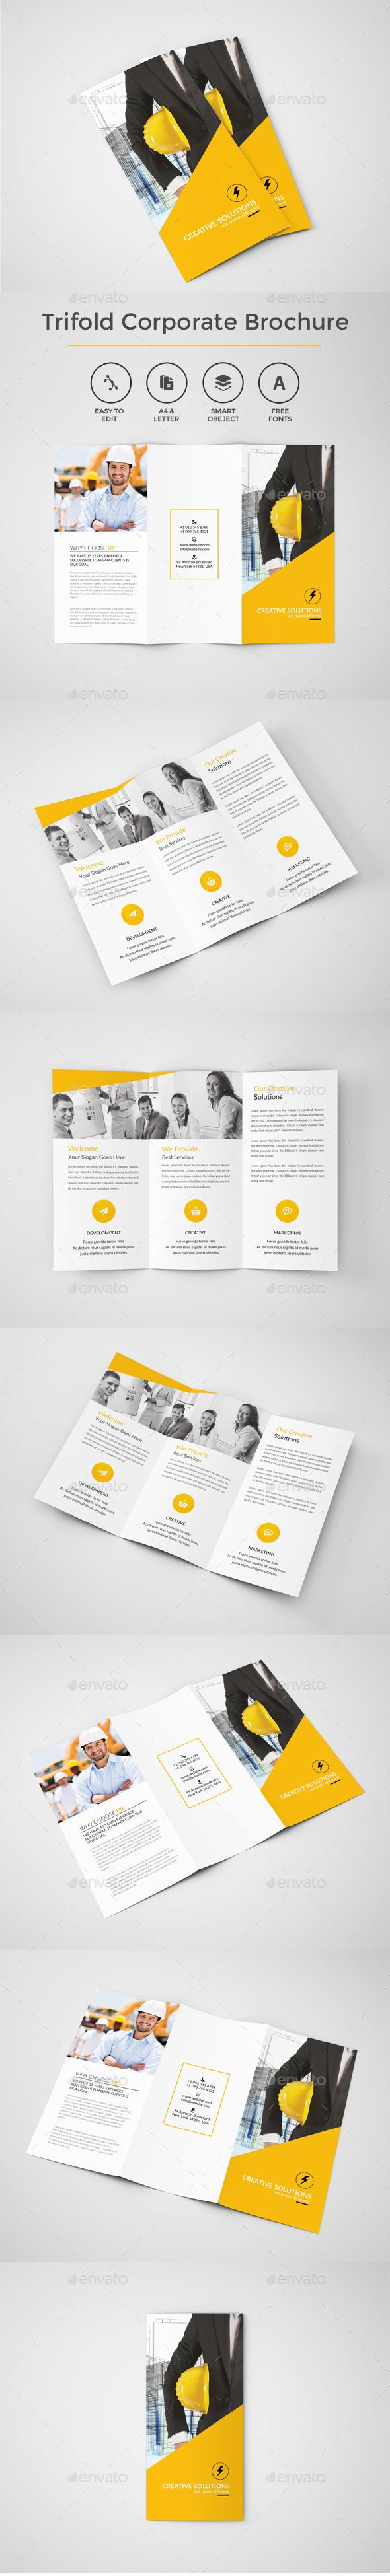 Premium Trifold Corporate Brochure Template #design Download: http://graphicriver.net/item/trifold-corporate-brochure/13124388?ref=ksioks